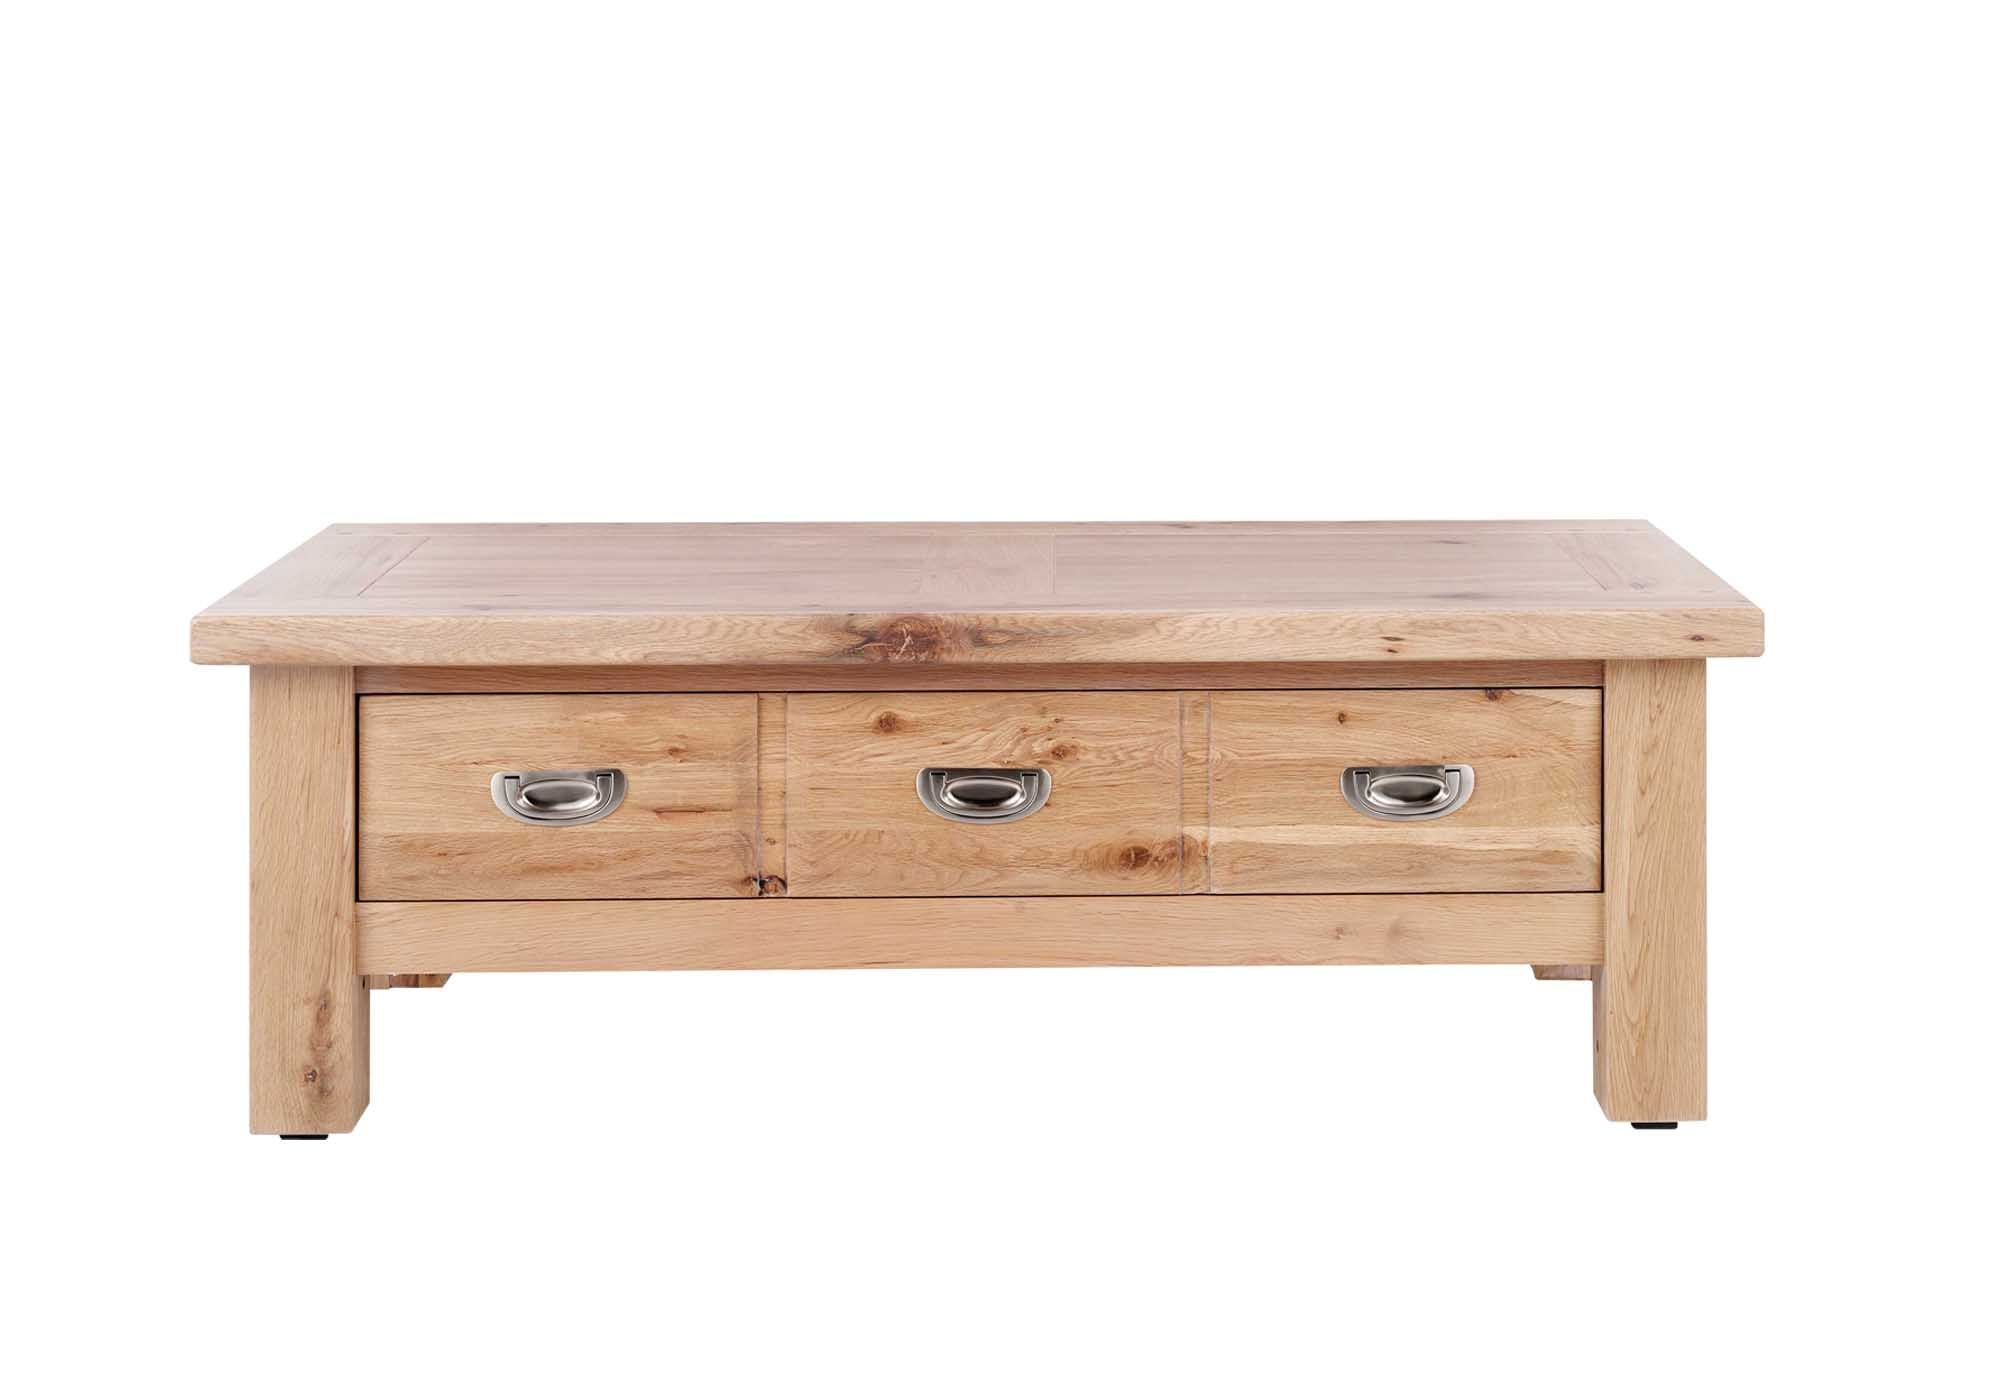 Coffee Table Willis And Gambier Tuscan Hills Dining Room